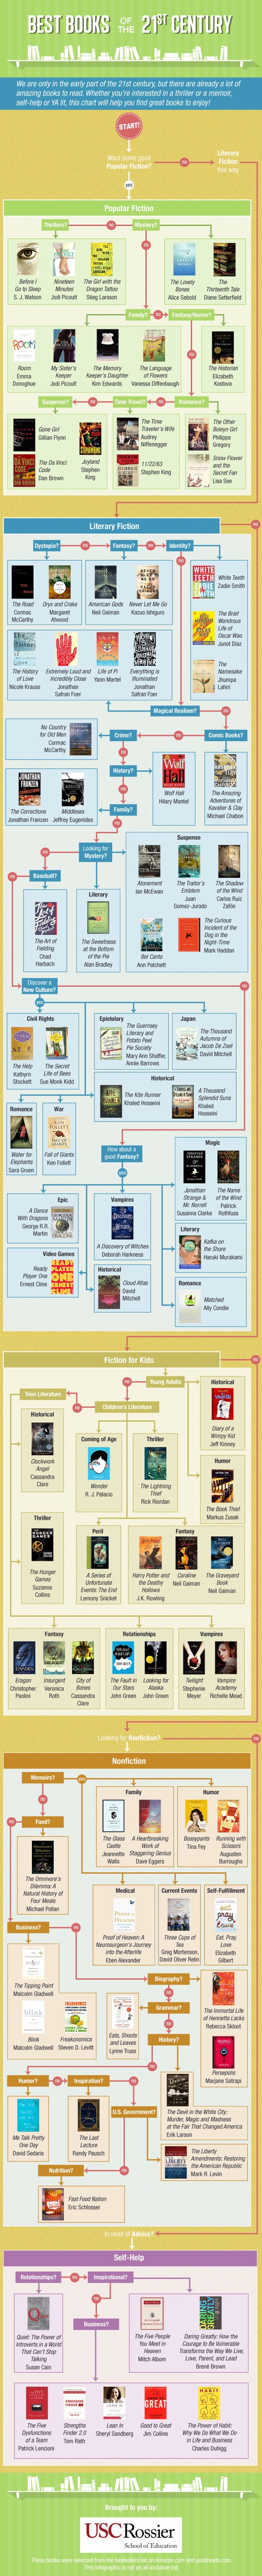 Best books of the 21st-century #infographic